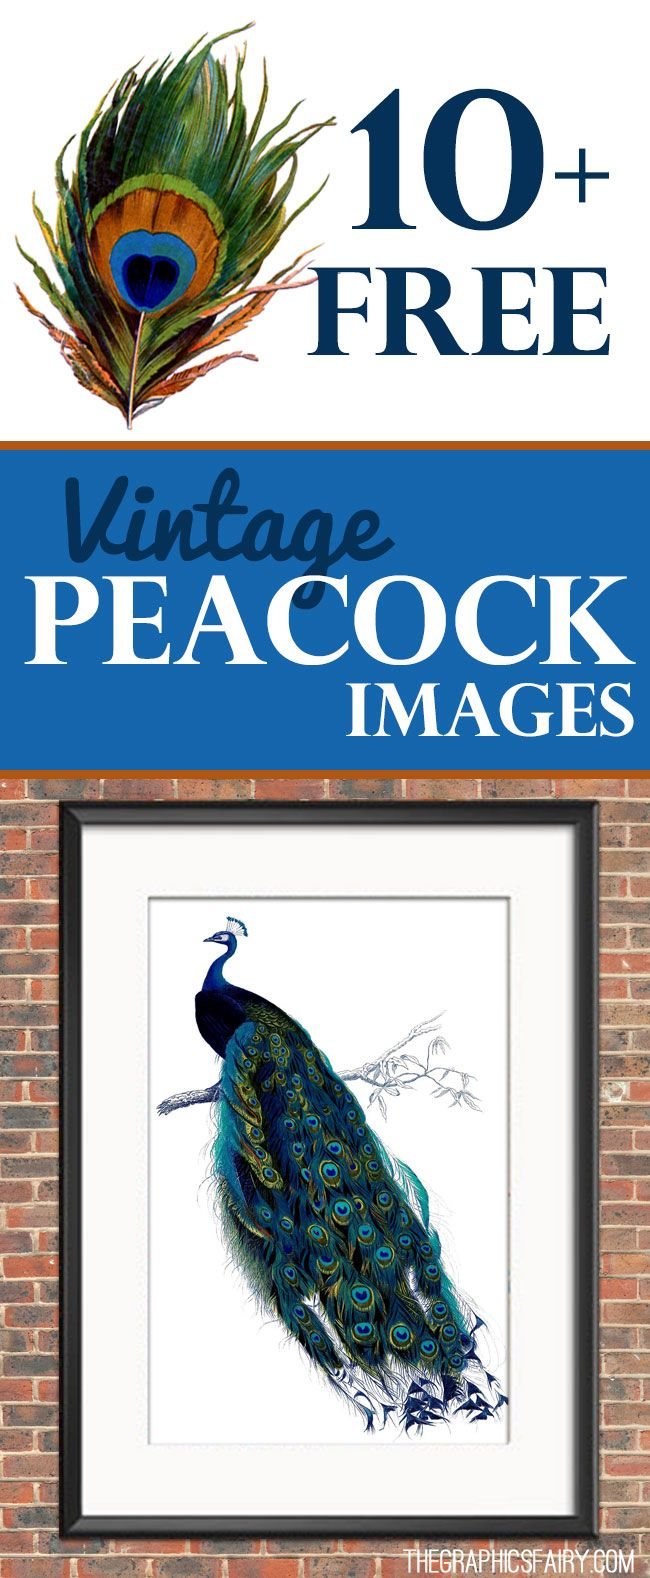 10 Free Vintage Peacock Images! Graphics Fairy. So many beautiful free vintage Peacock graphics to print and use in craft projects and DIY Home decor. Or make your own Printables! Vintage Freebies!